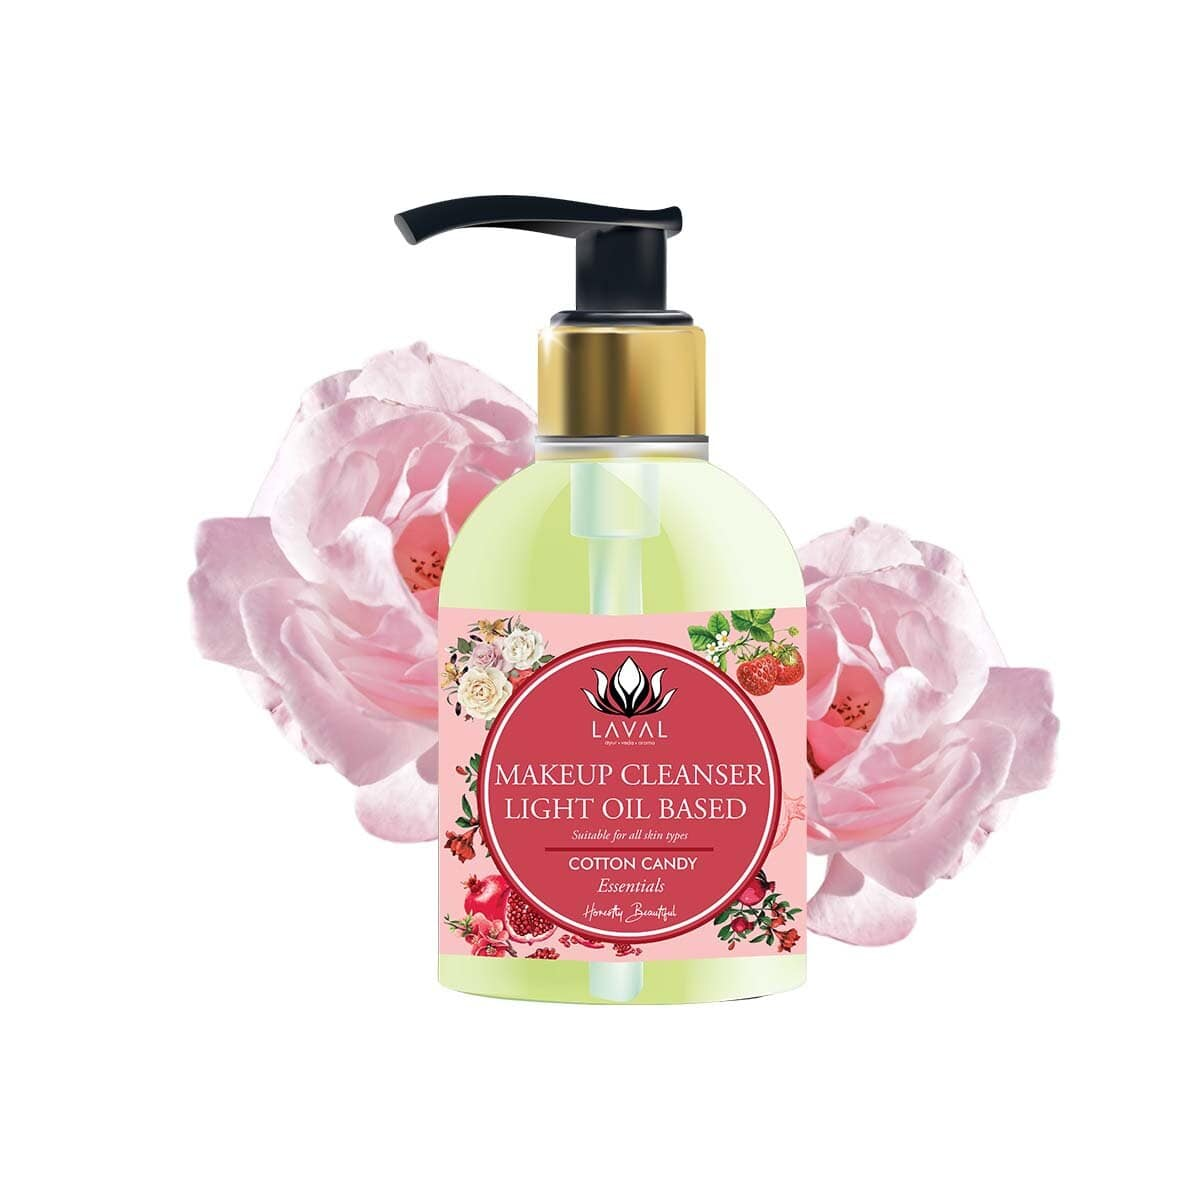 LAVAL | COTTON CANDY MAKEUP CLEANSER - LIGHT OIL BASED